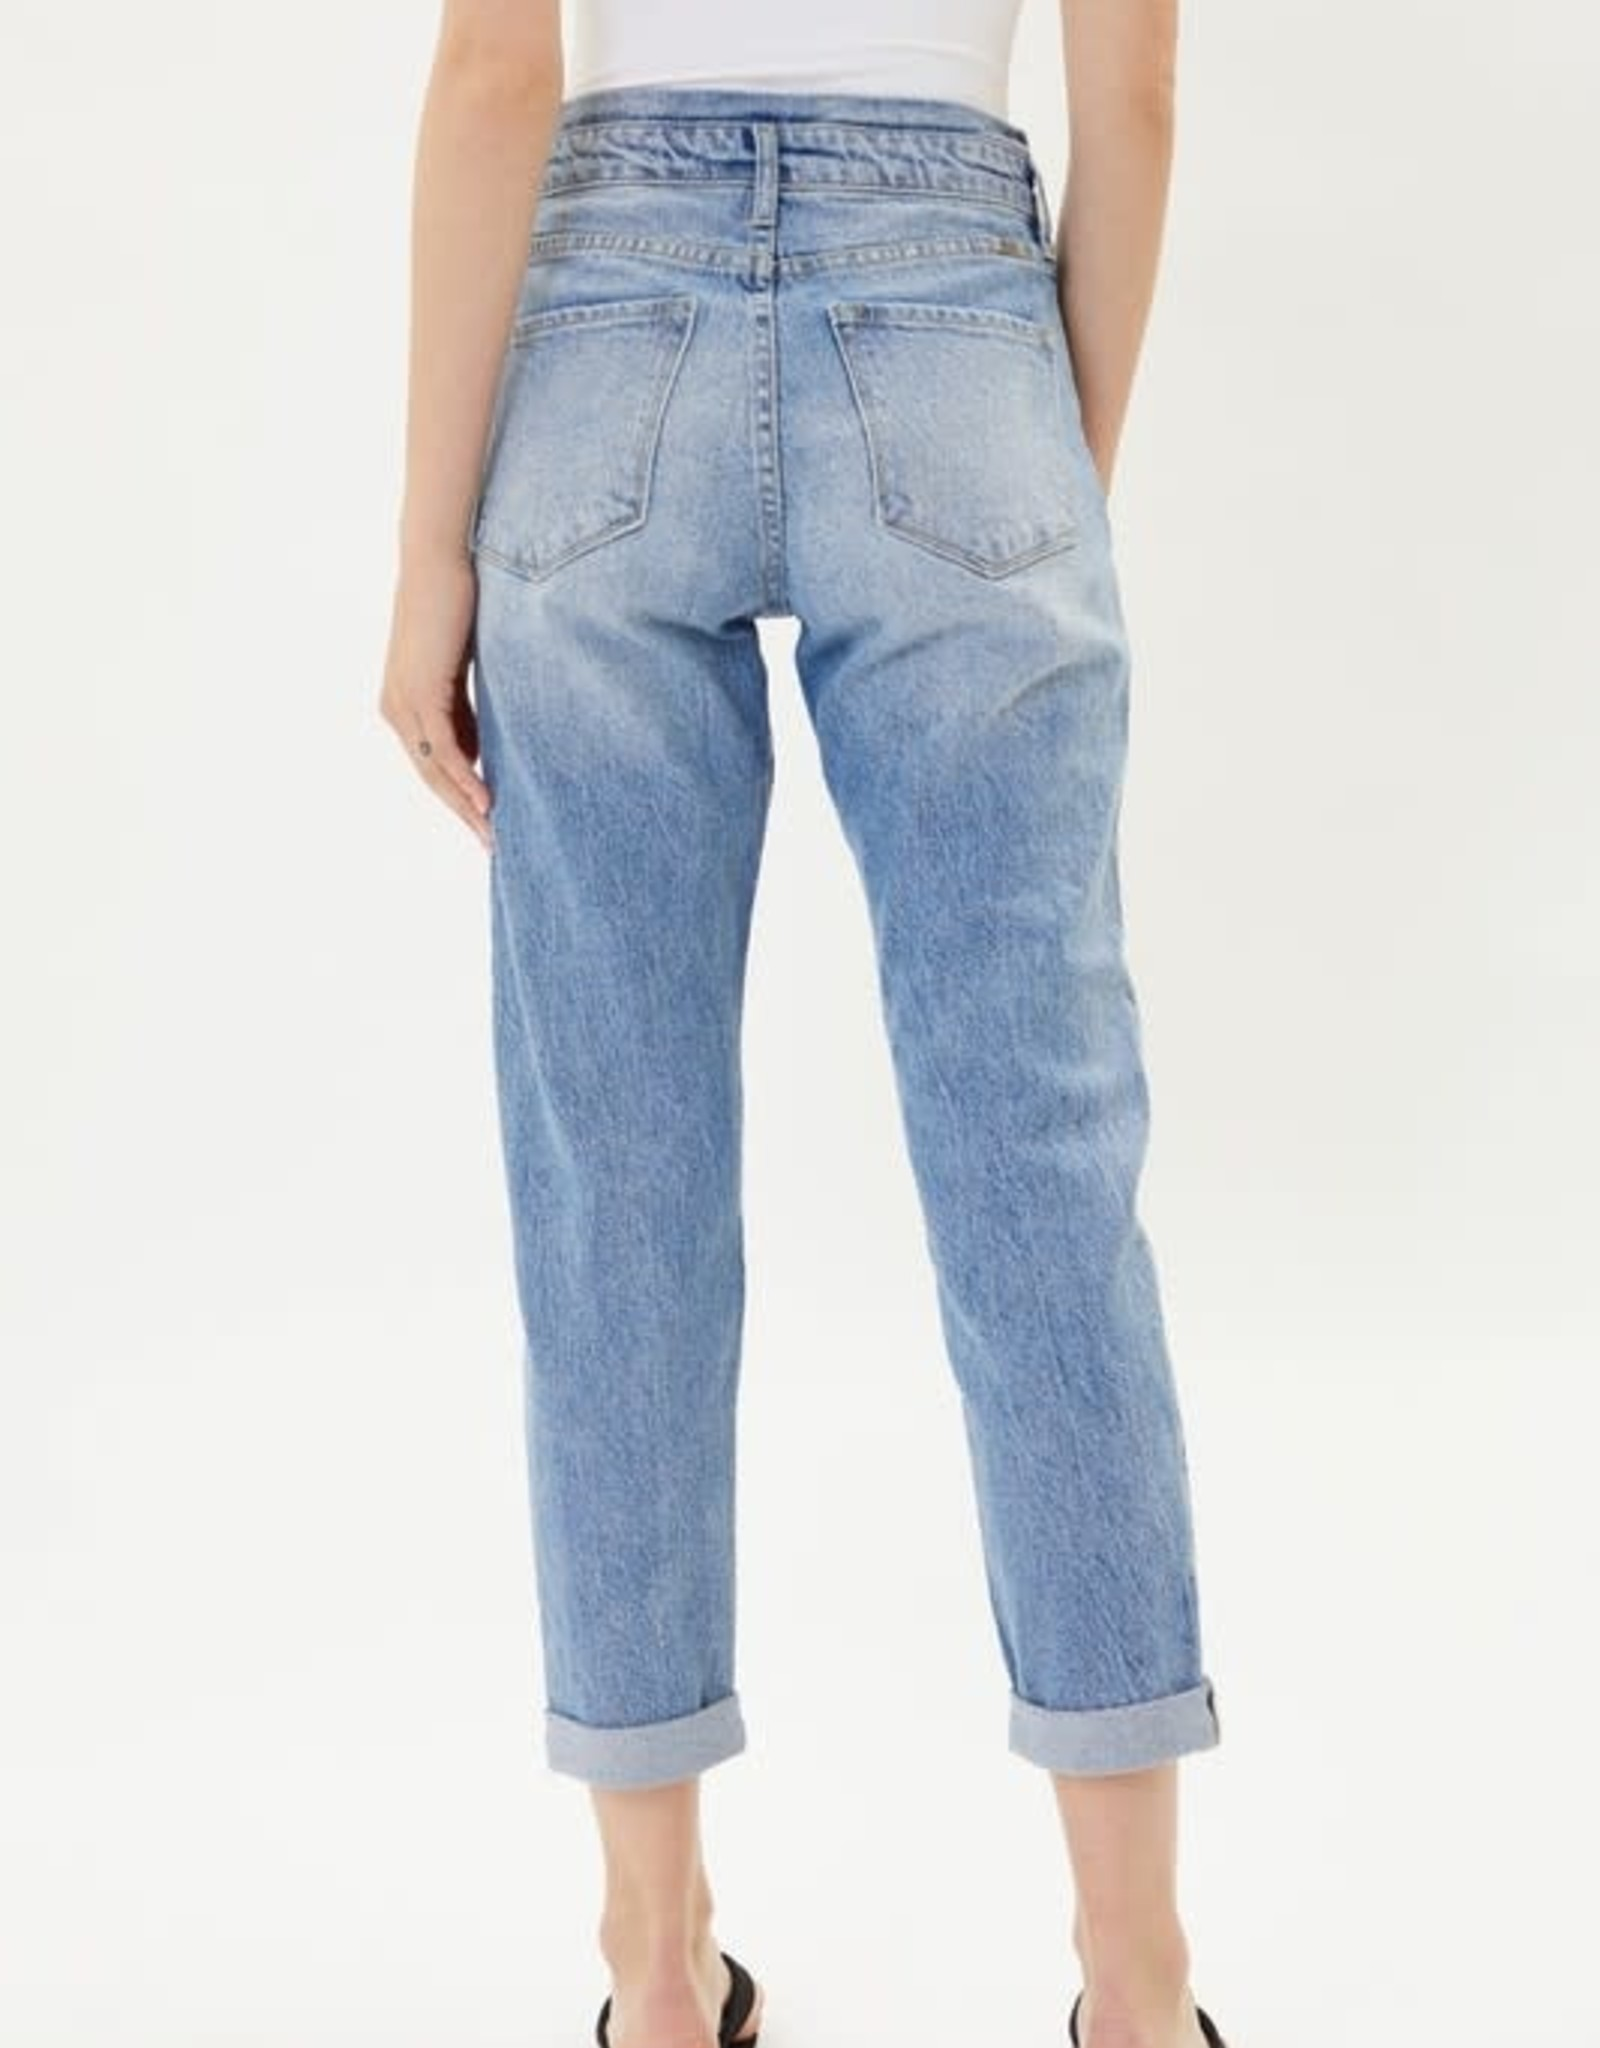 Miss Bliss High Rise Mom Fit Jeans- Light Wash